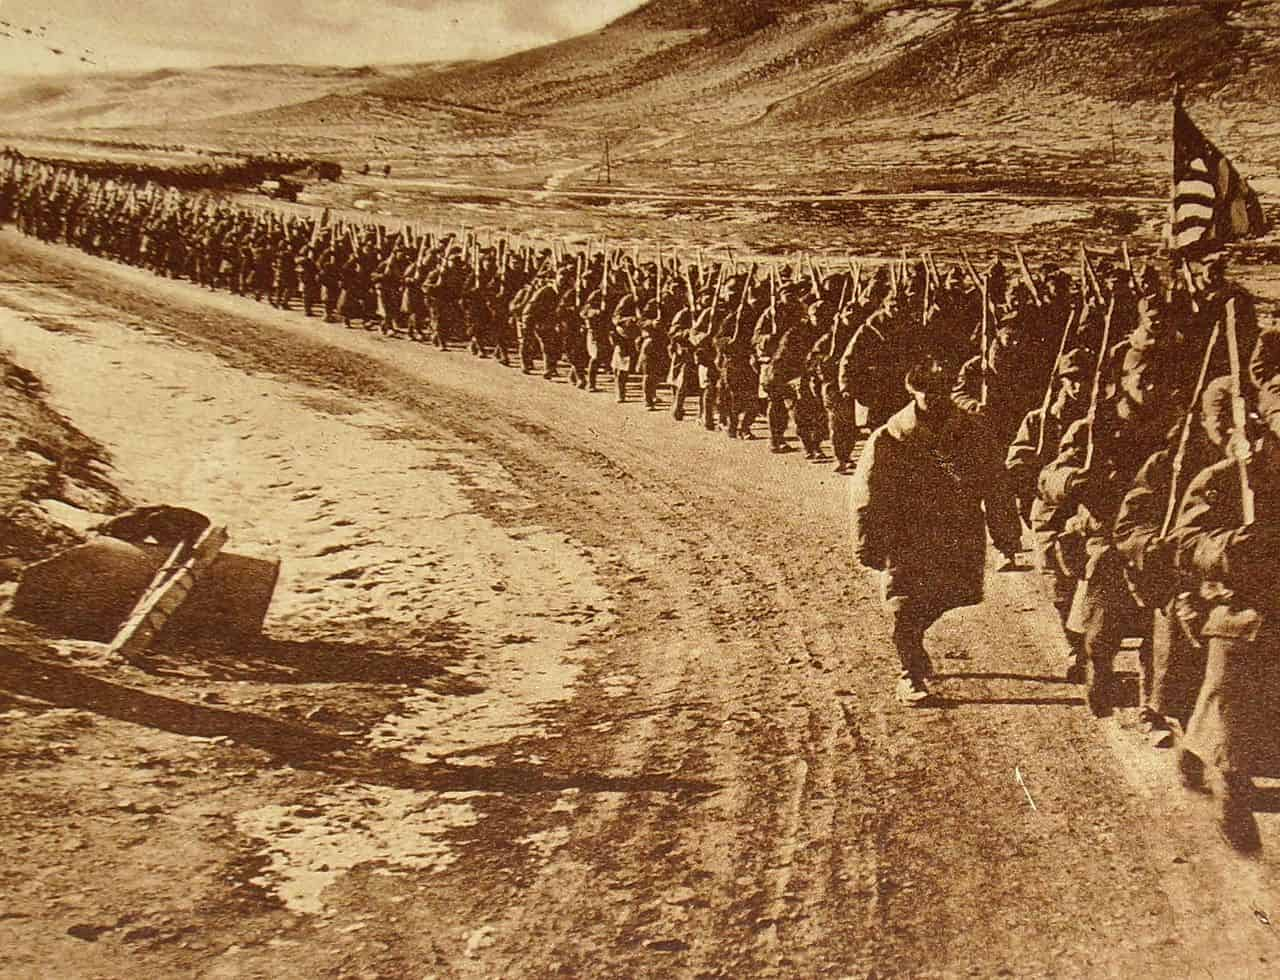 American troops walking along a road during World War 1